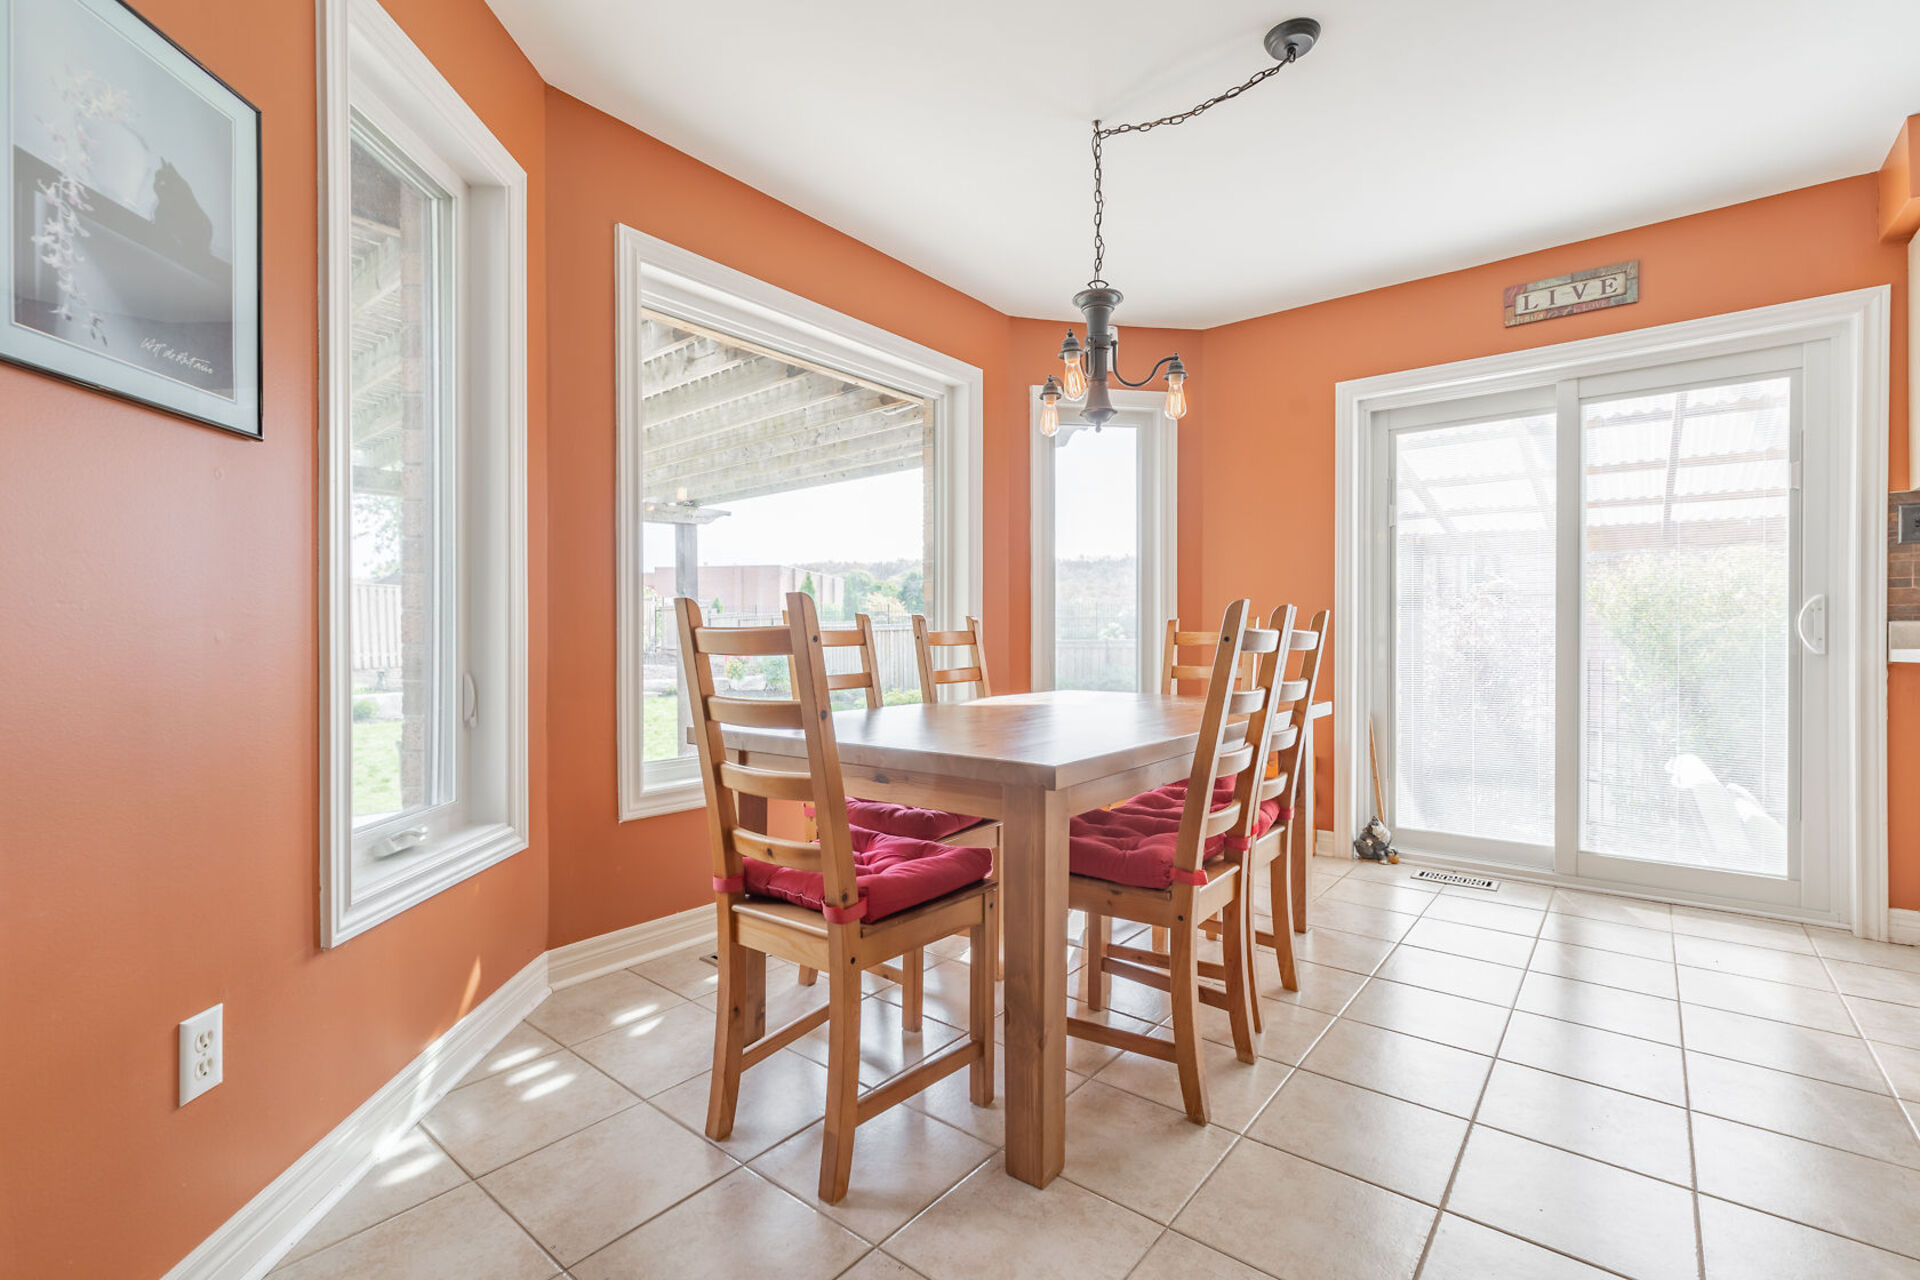 virtual-tour-302461-16 at 47 Chianti Cres, Stoney Creek, Hamilton